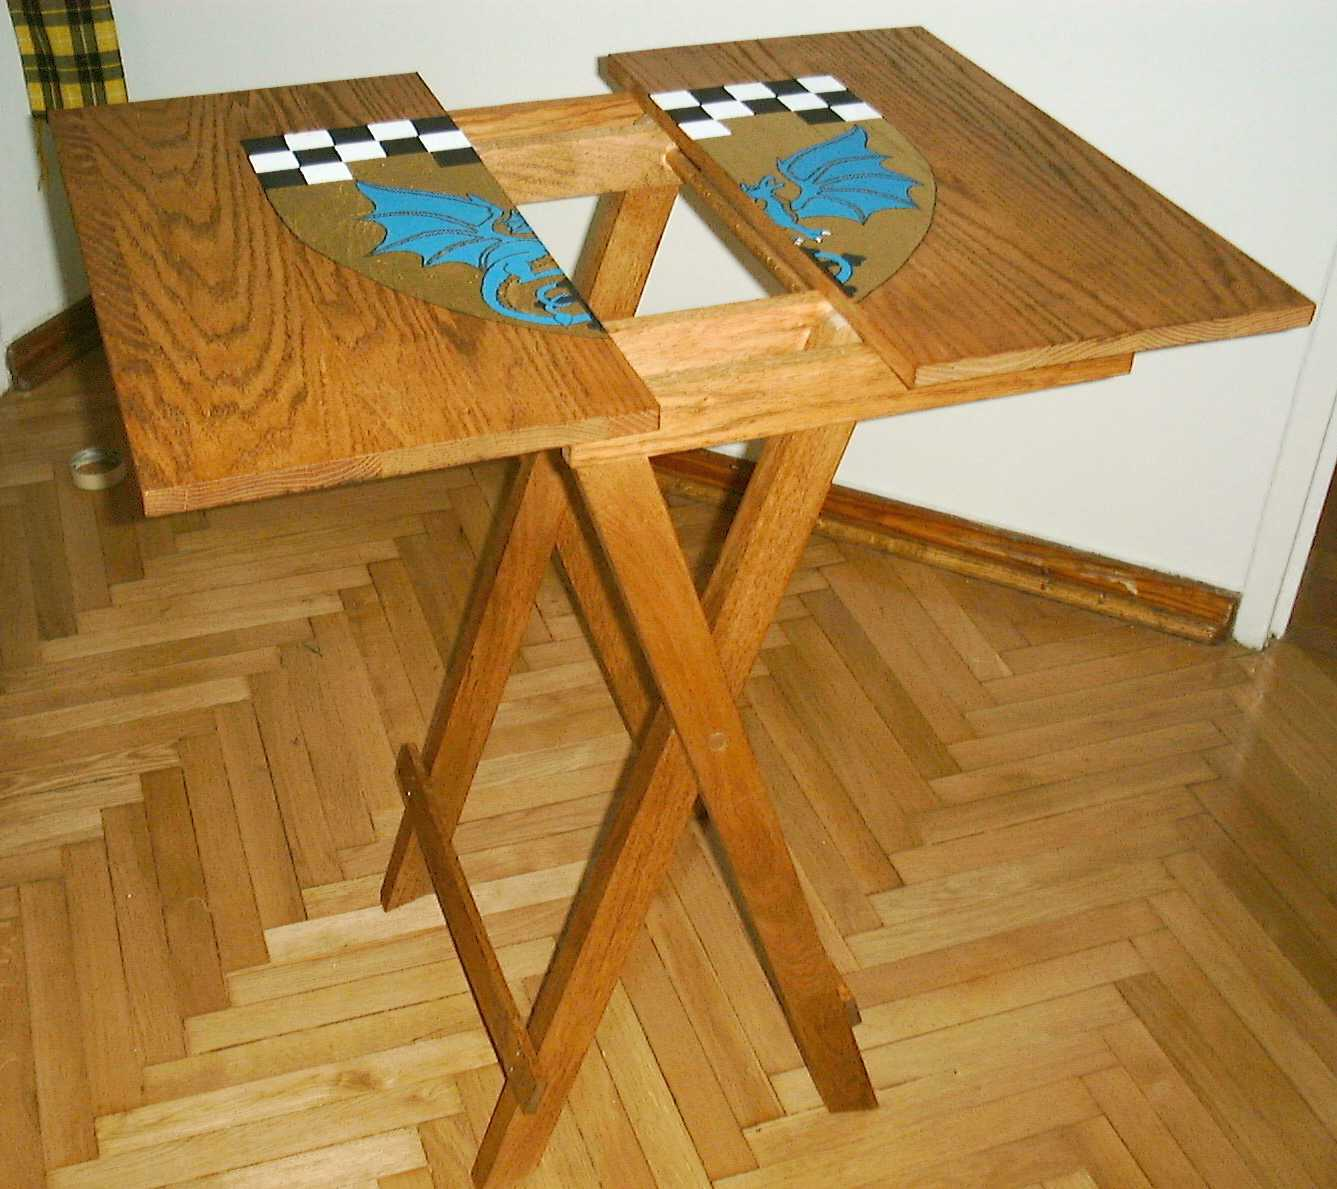 The Table Spread Apart Showing Top Rests